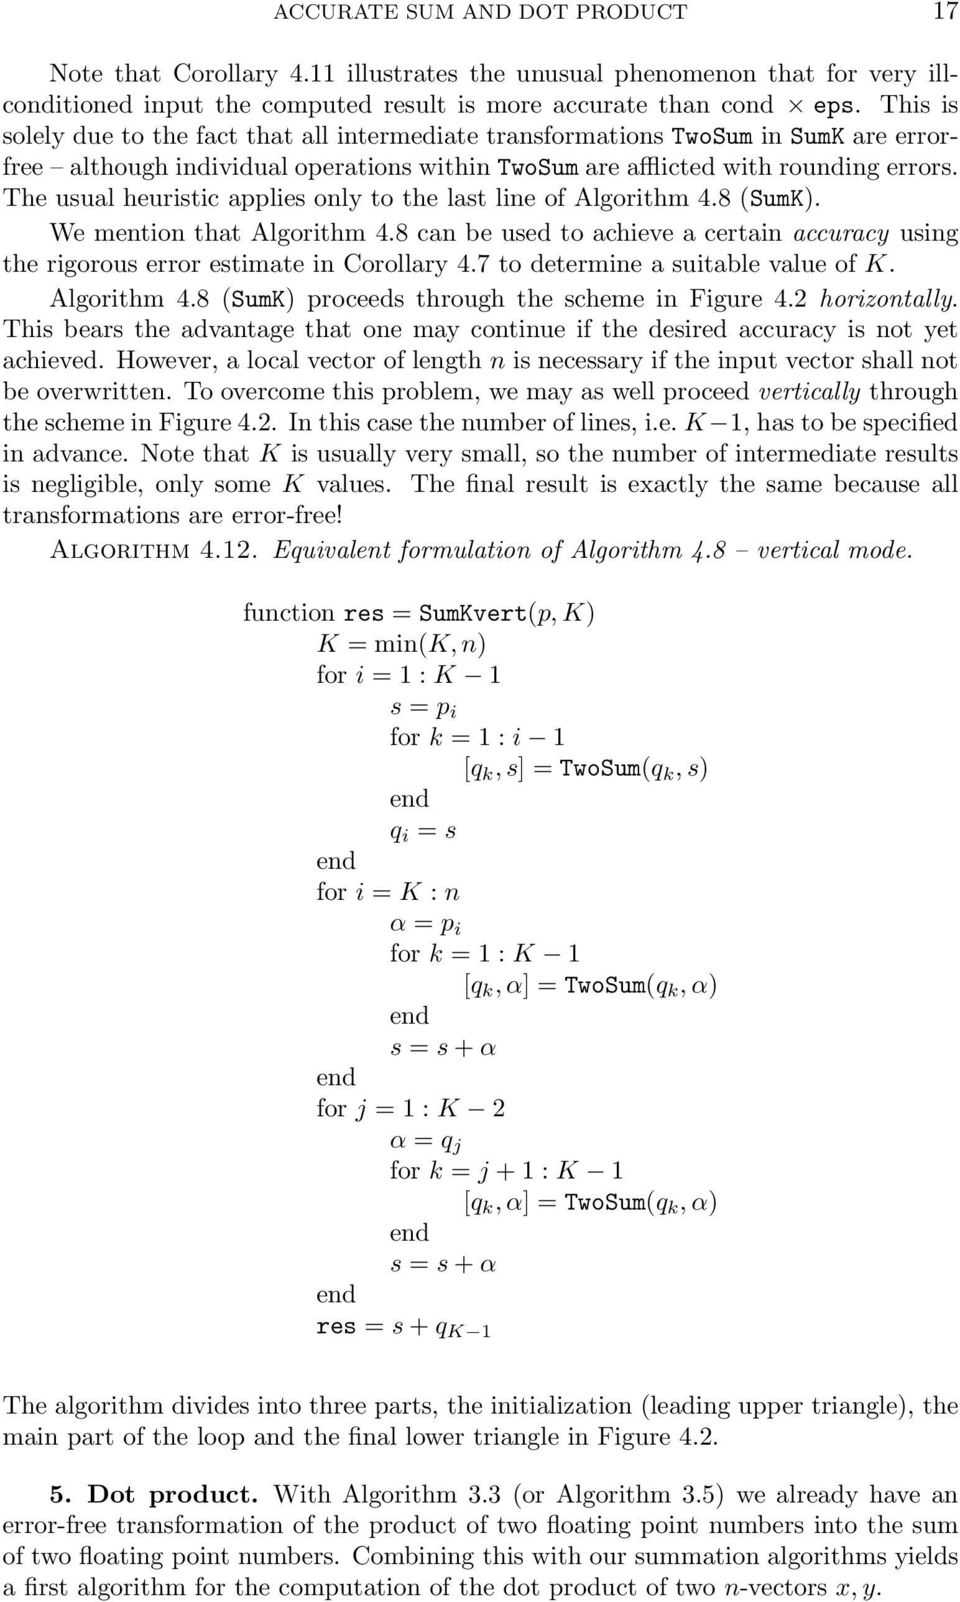 The usual heuristic applies only to the last line of Algorithm 4.8 (SumK). We mention that Algorithm 4.8 can be used to achieve a certain accuracy using the rigorous error estimate in Corollary 4.